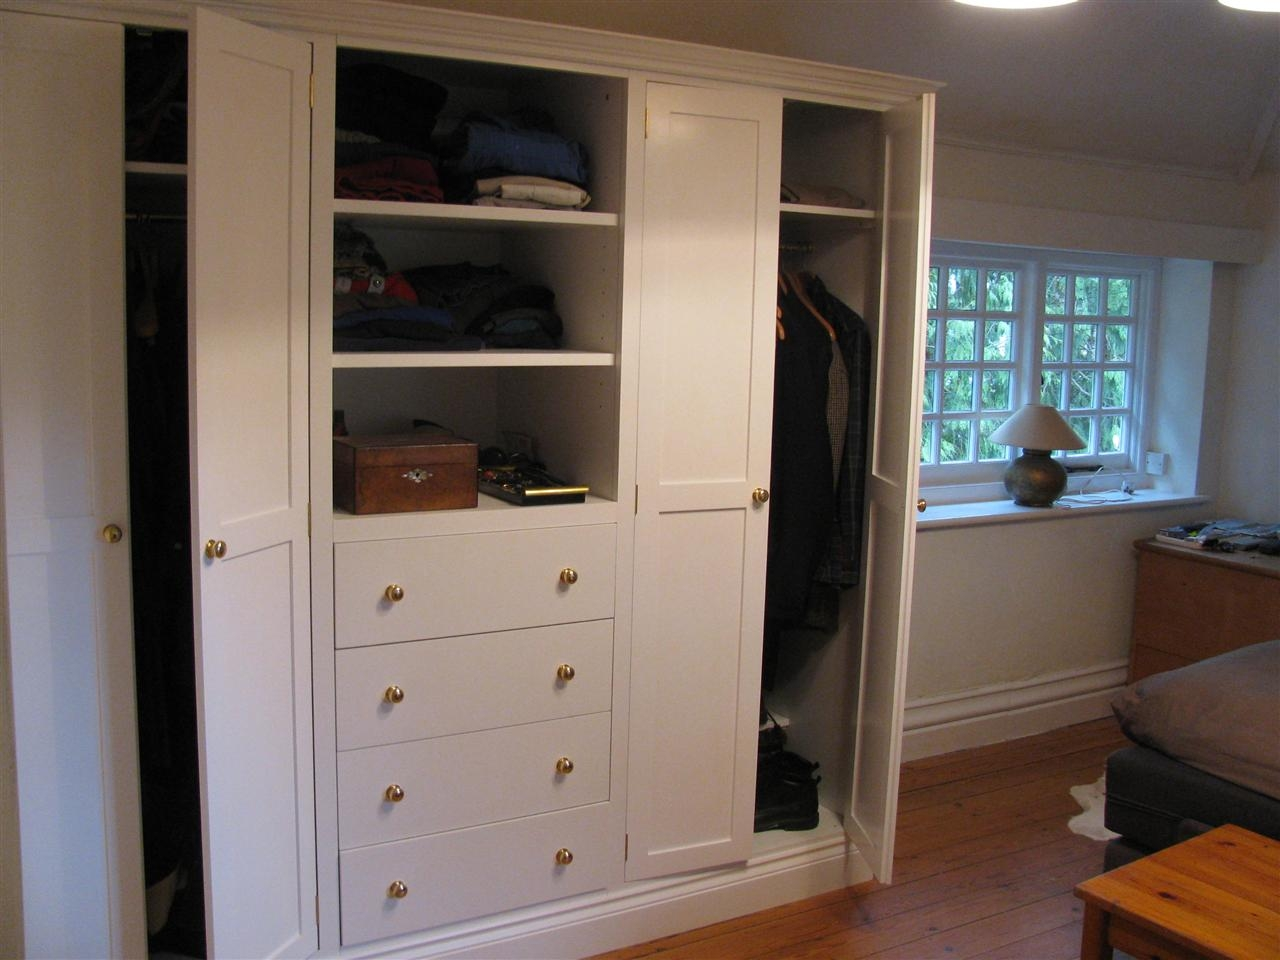 Wardrobes In Wardrobe With Shelves And Drawers (View 12 of 15)